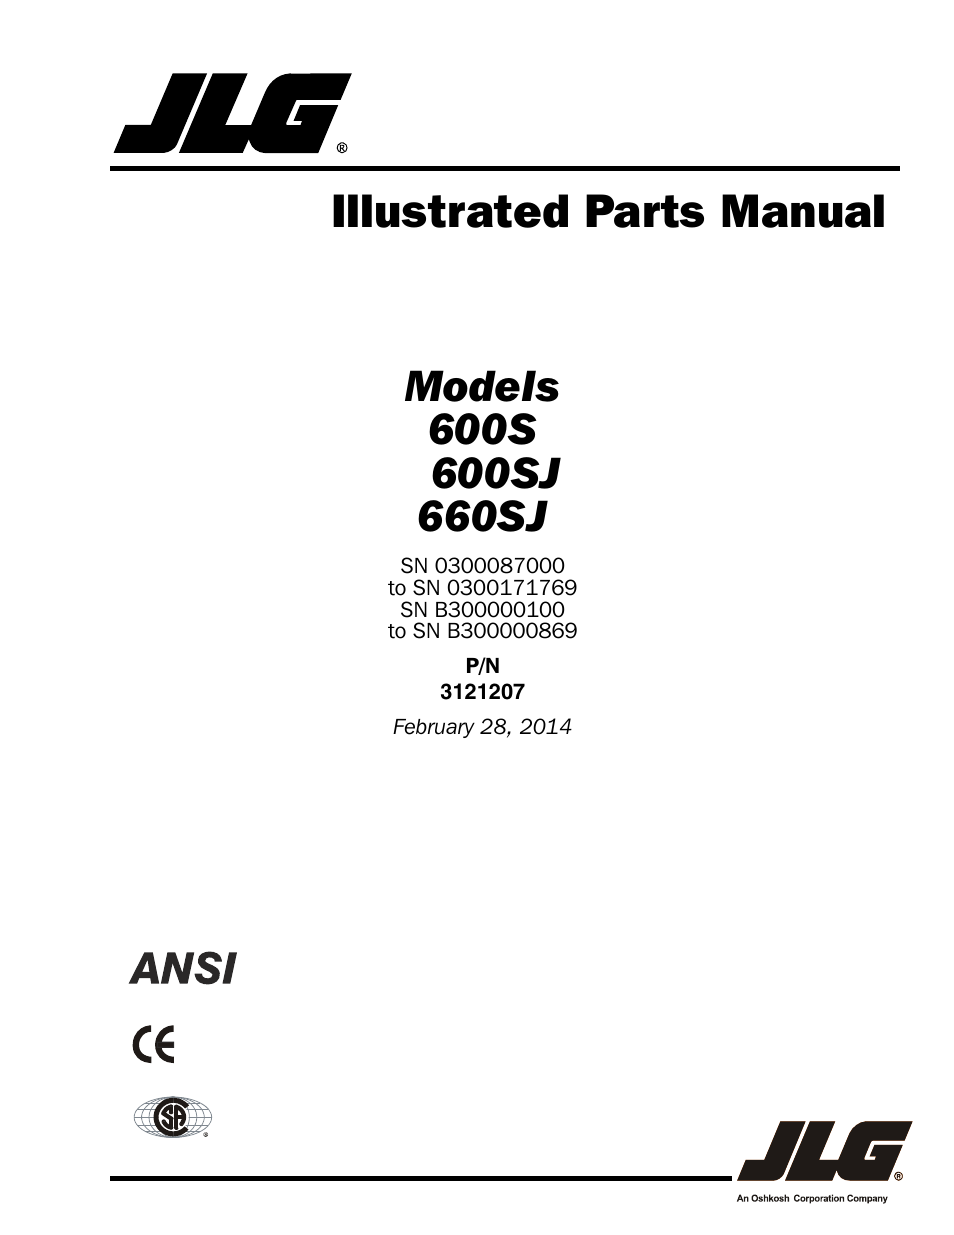 JLG 660SJ Parts Manual User Manual | 404 pages | Also for .